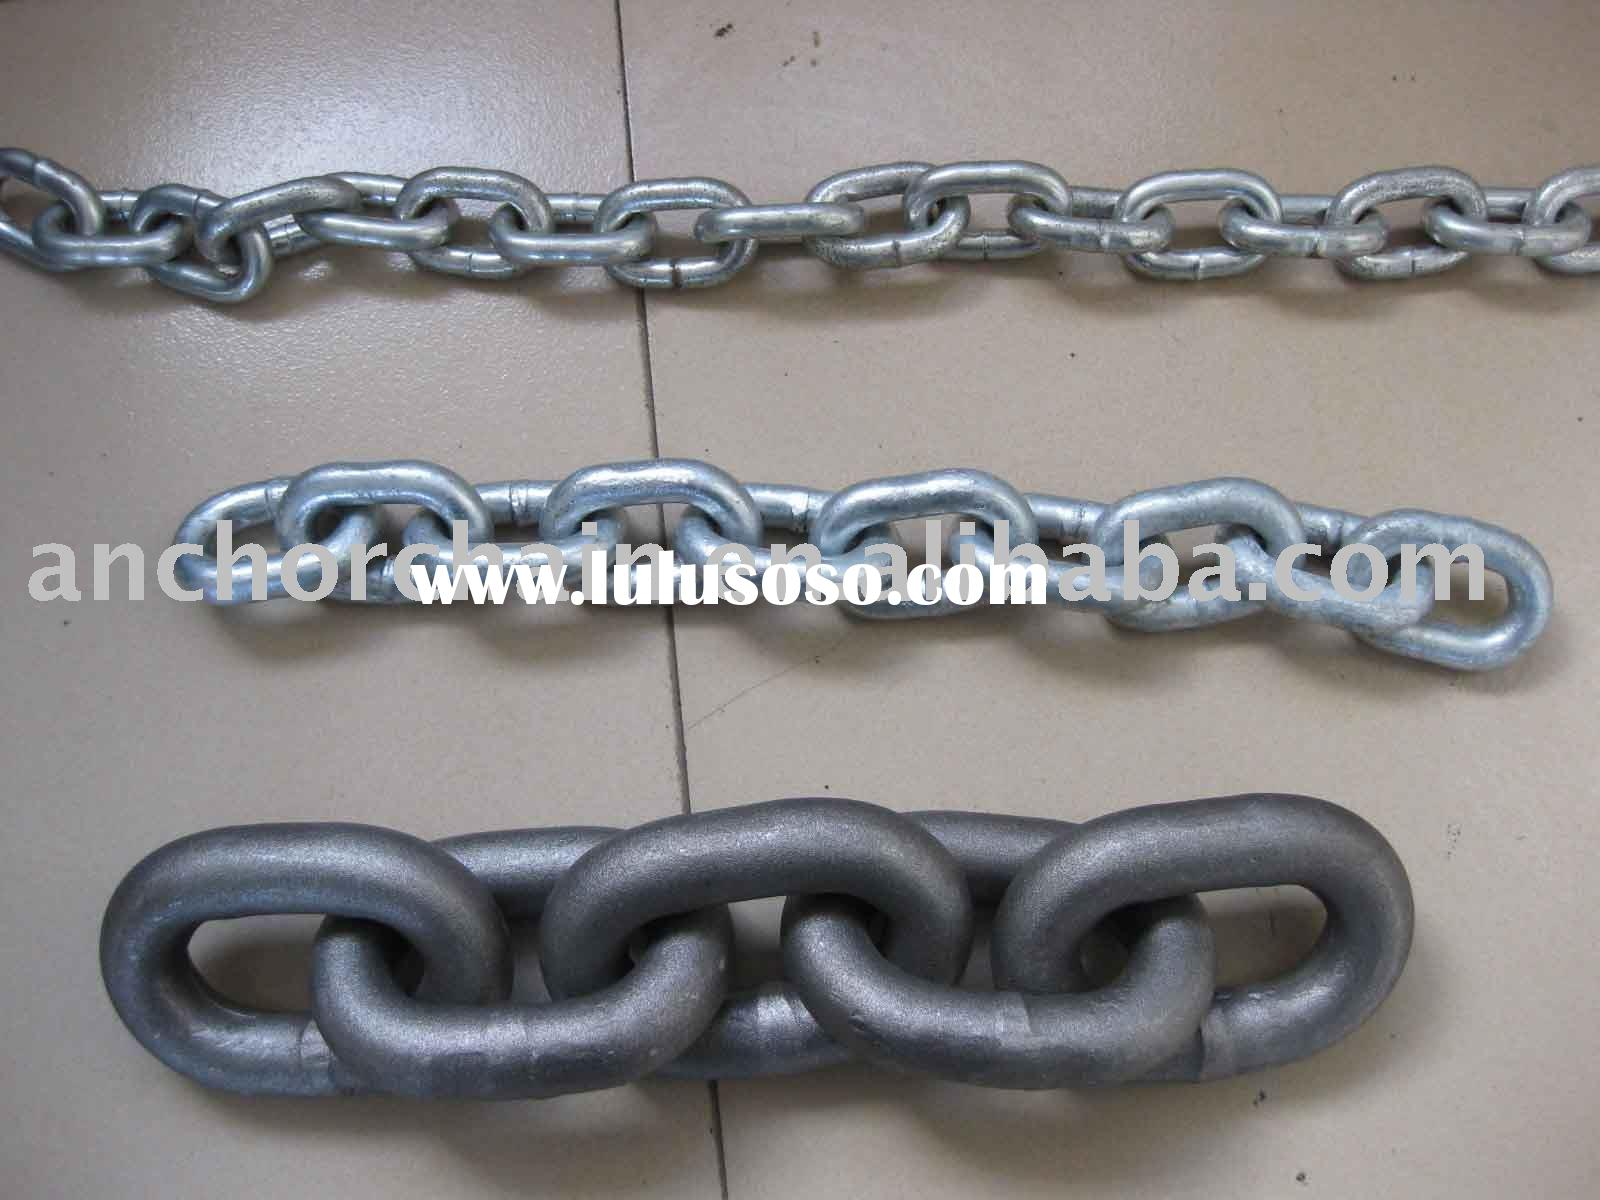 mining link chains